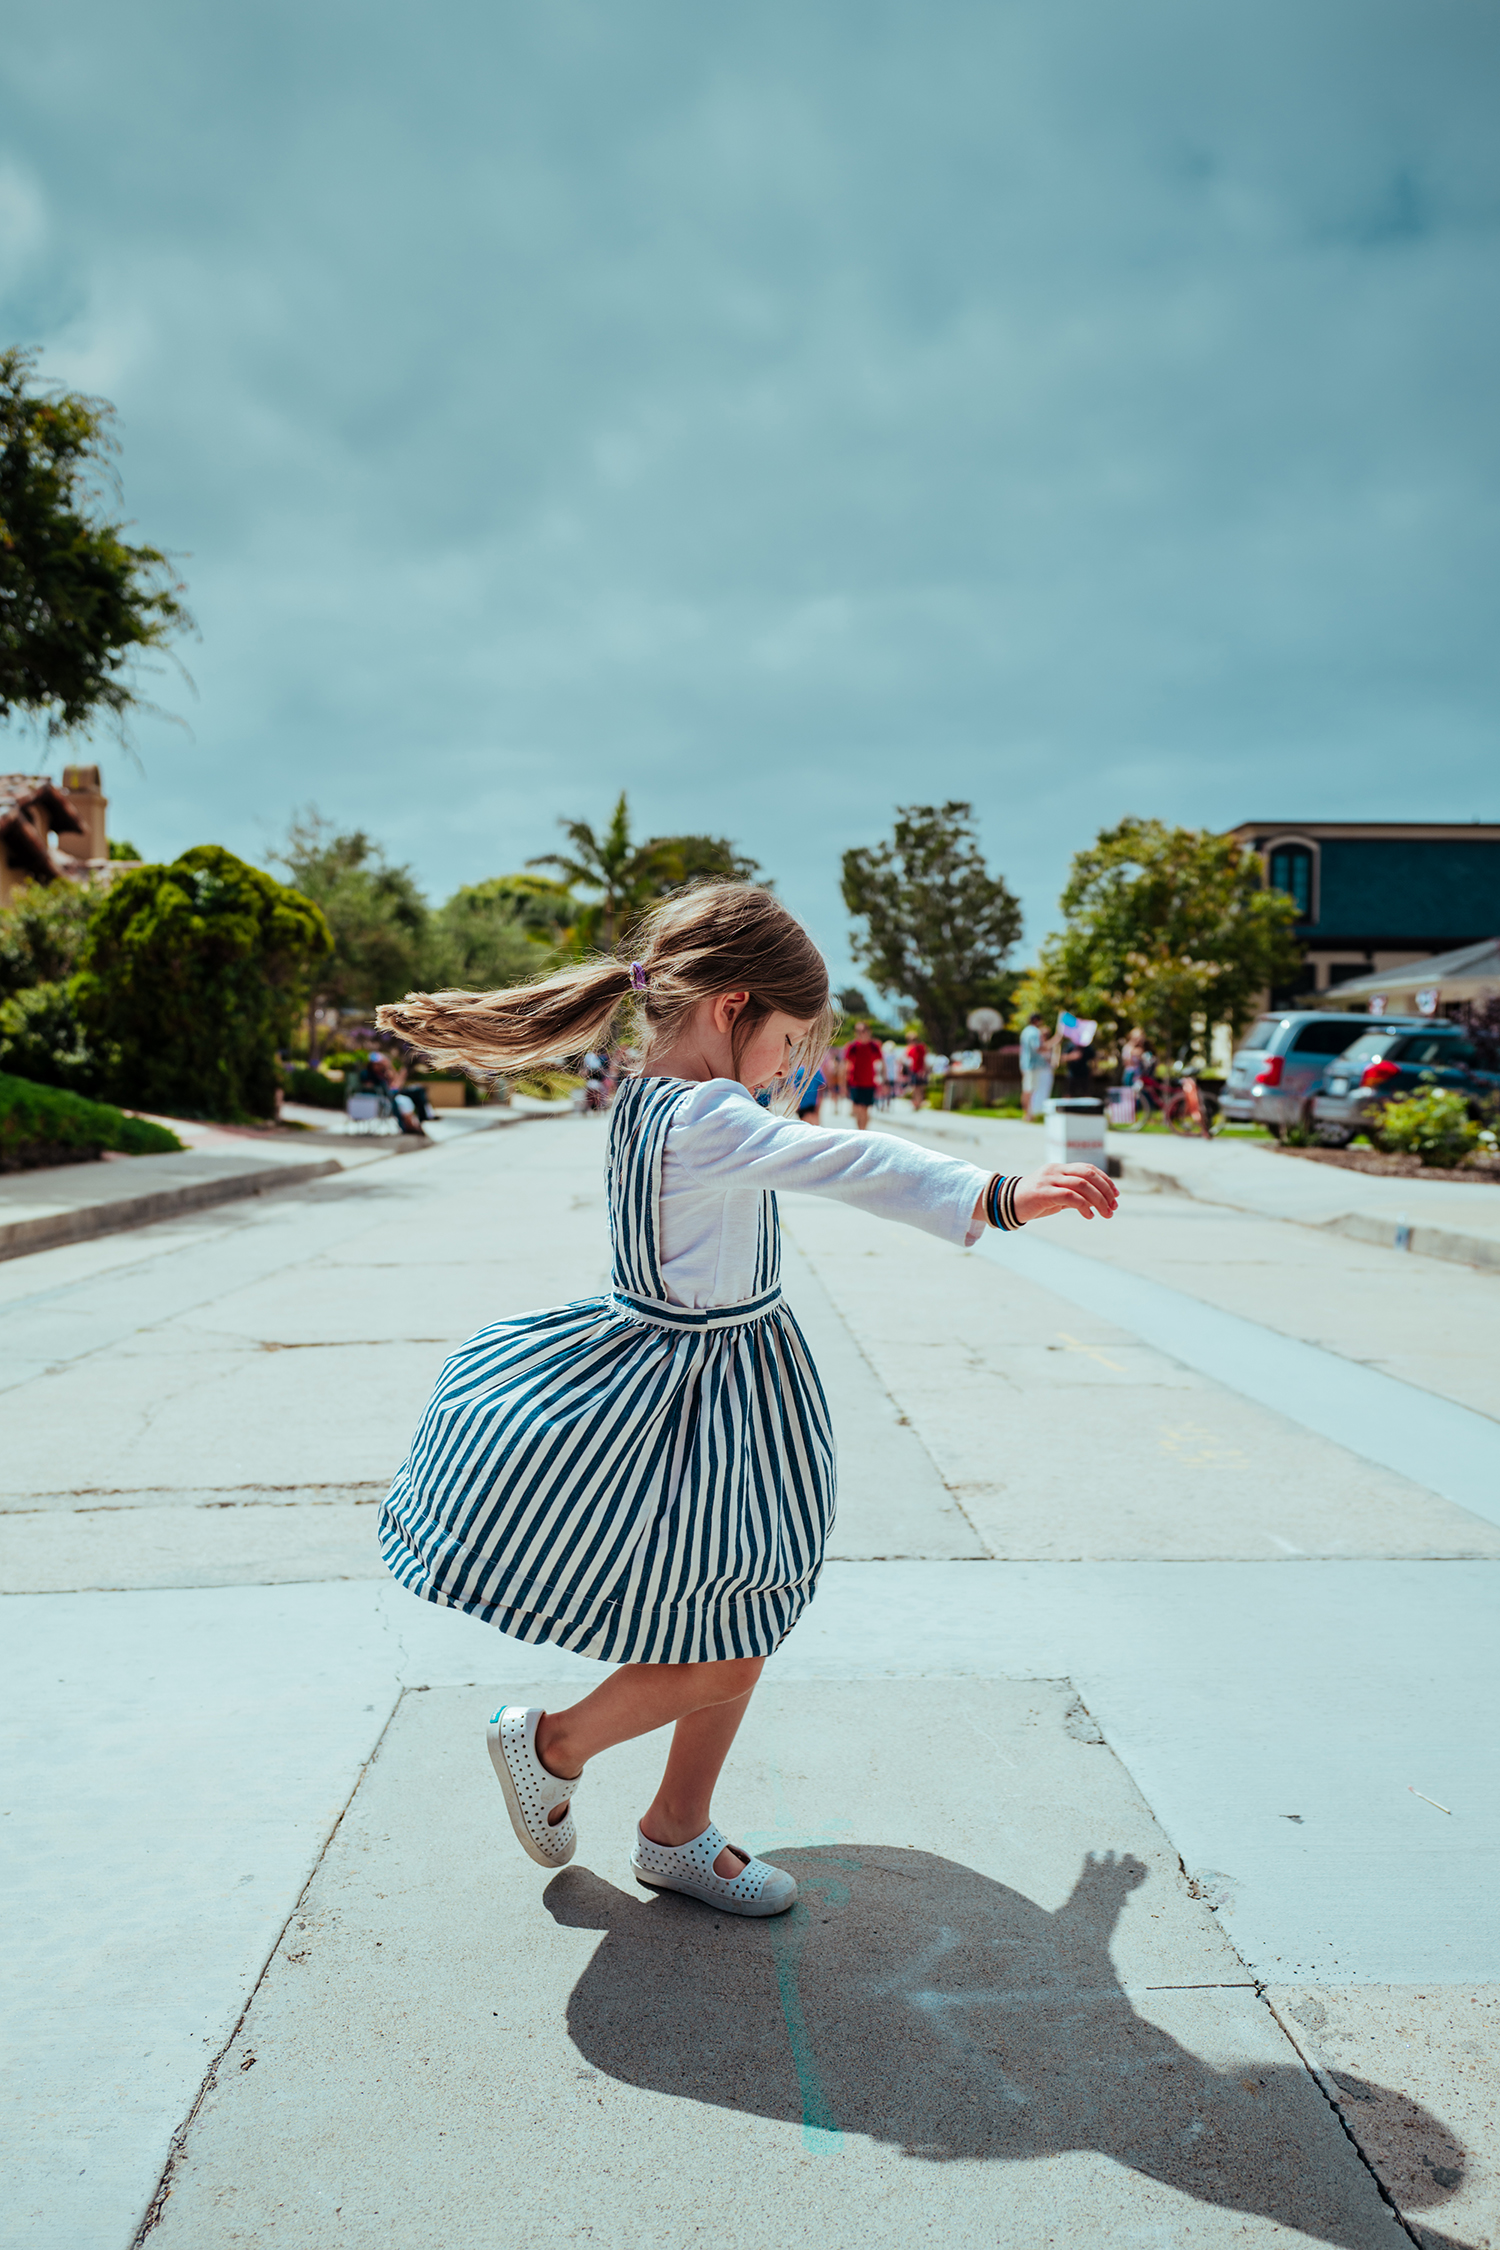 A girl playing on a san diego street